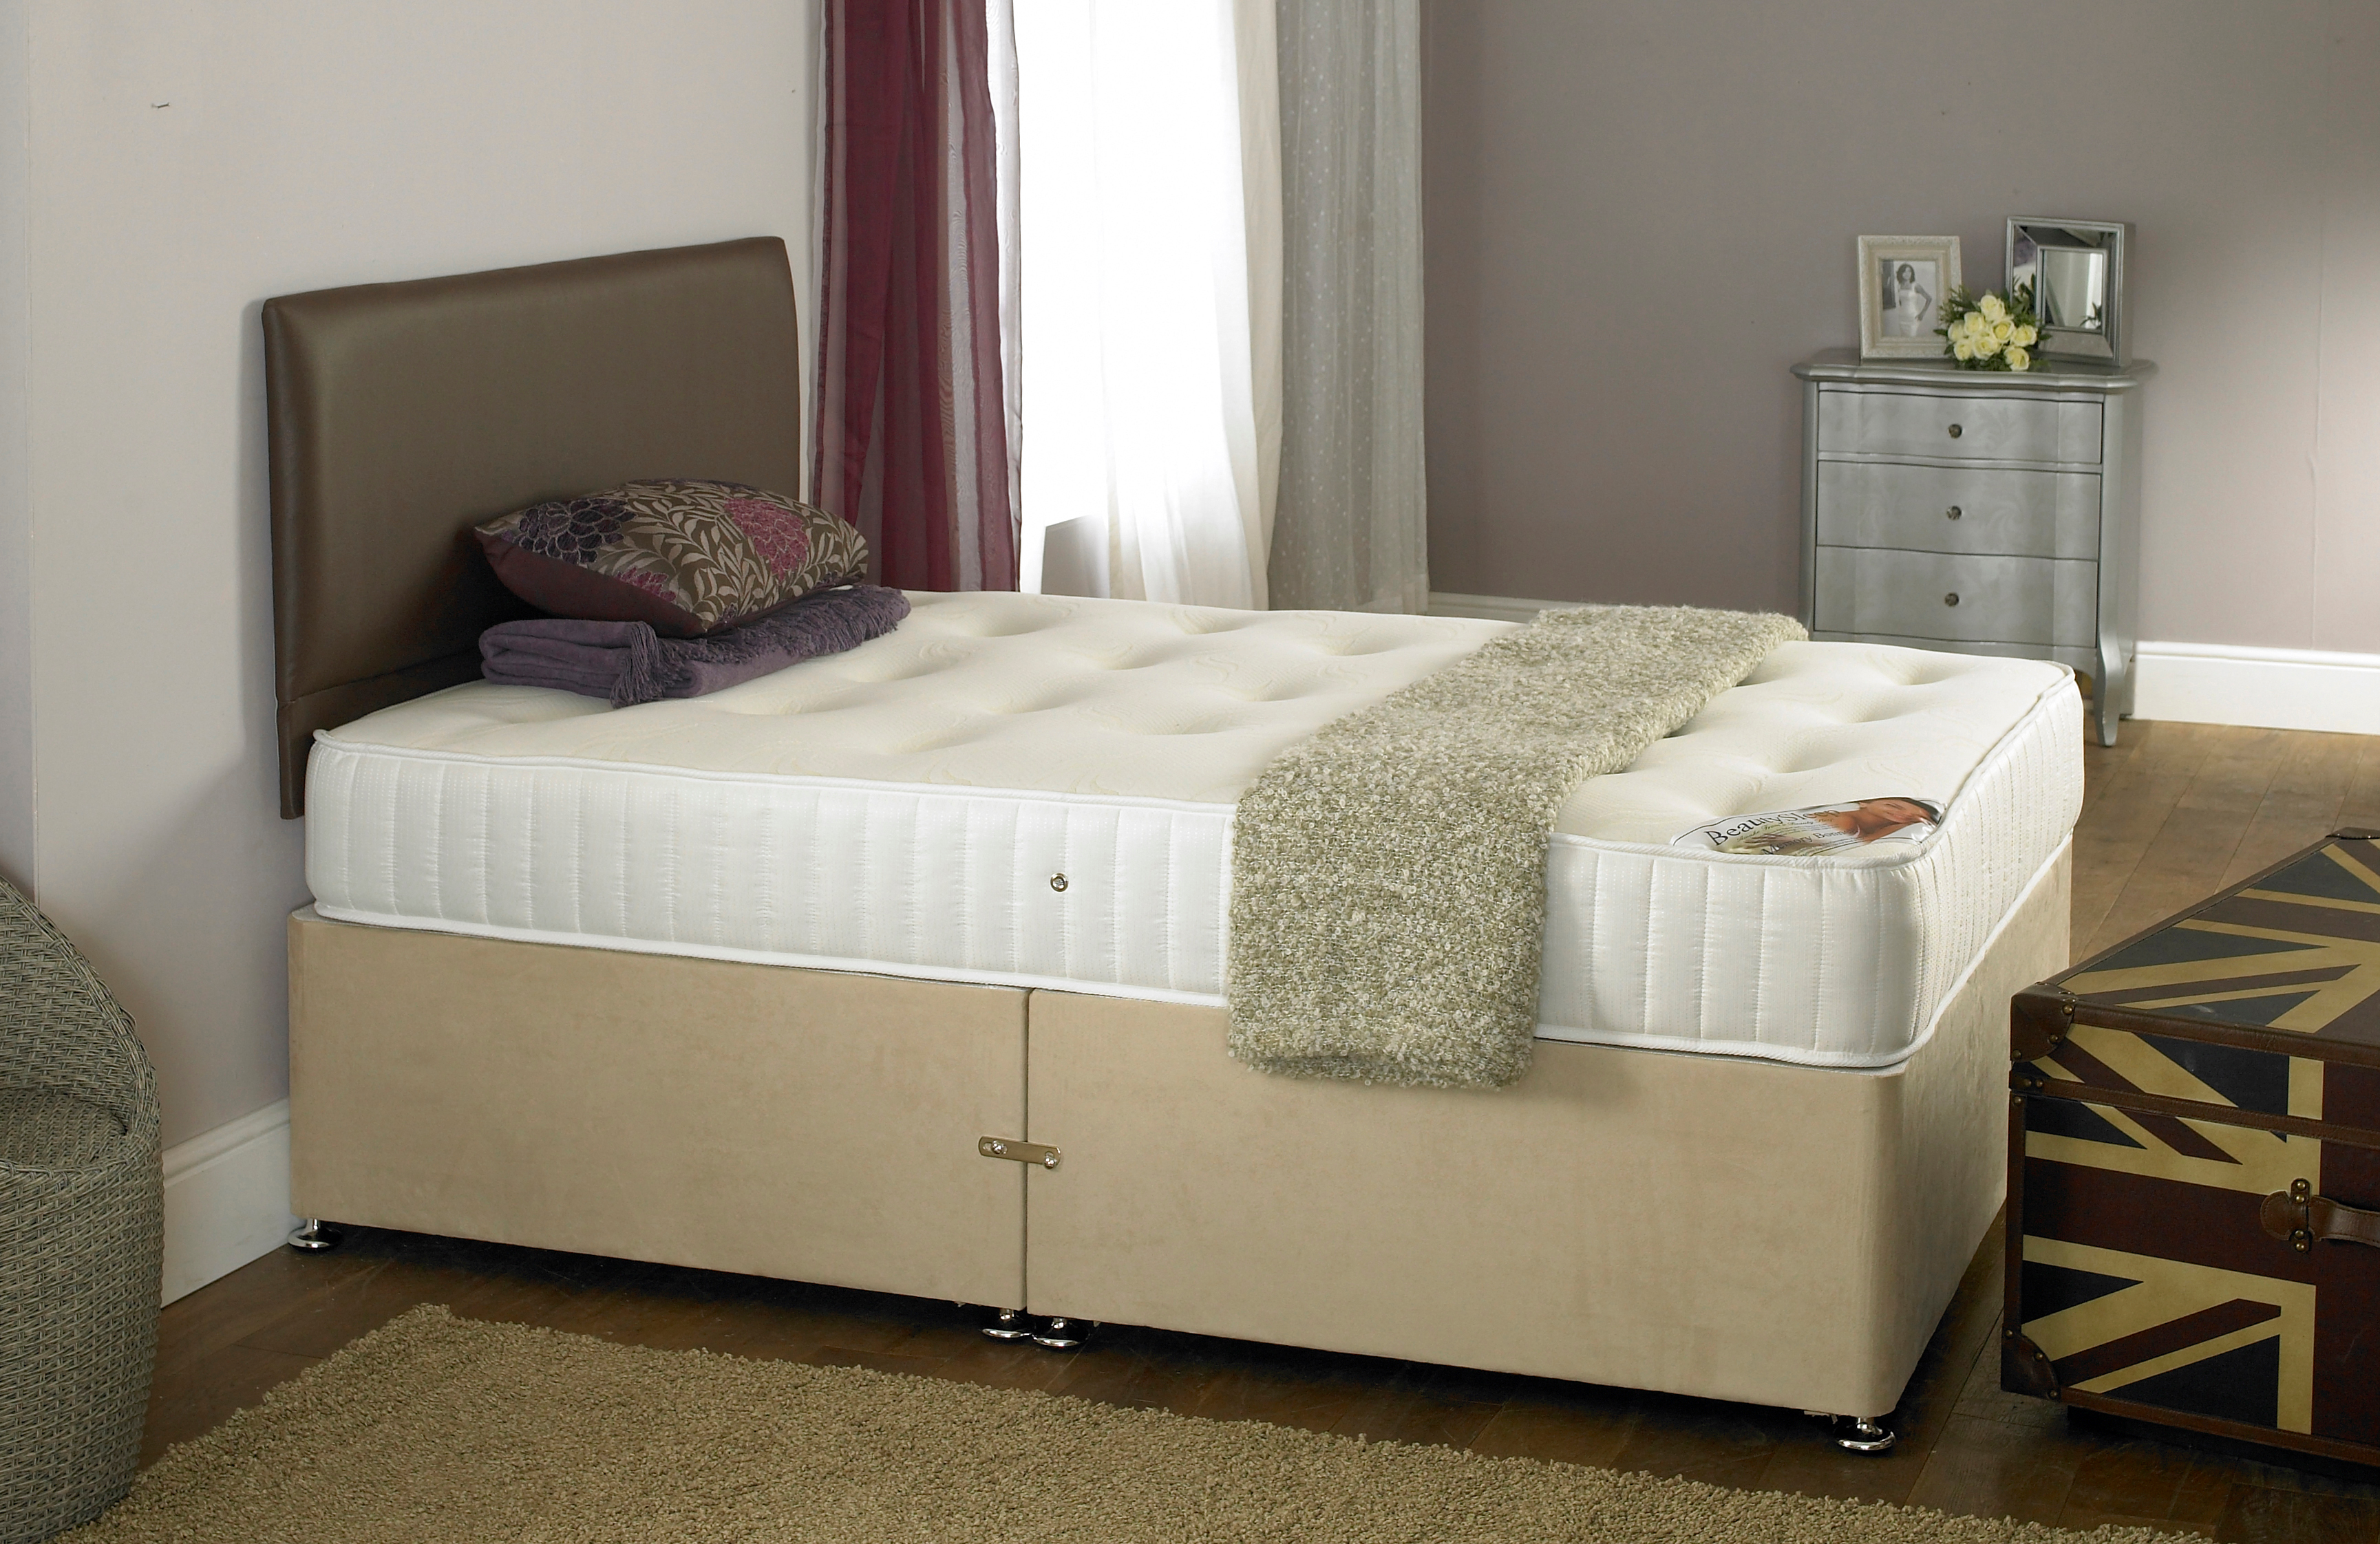 the new divan man ltd chesterfield beds mattress